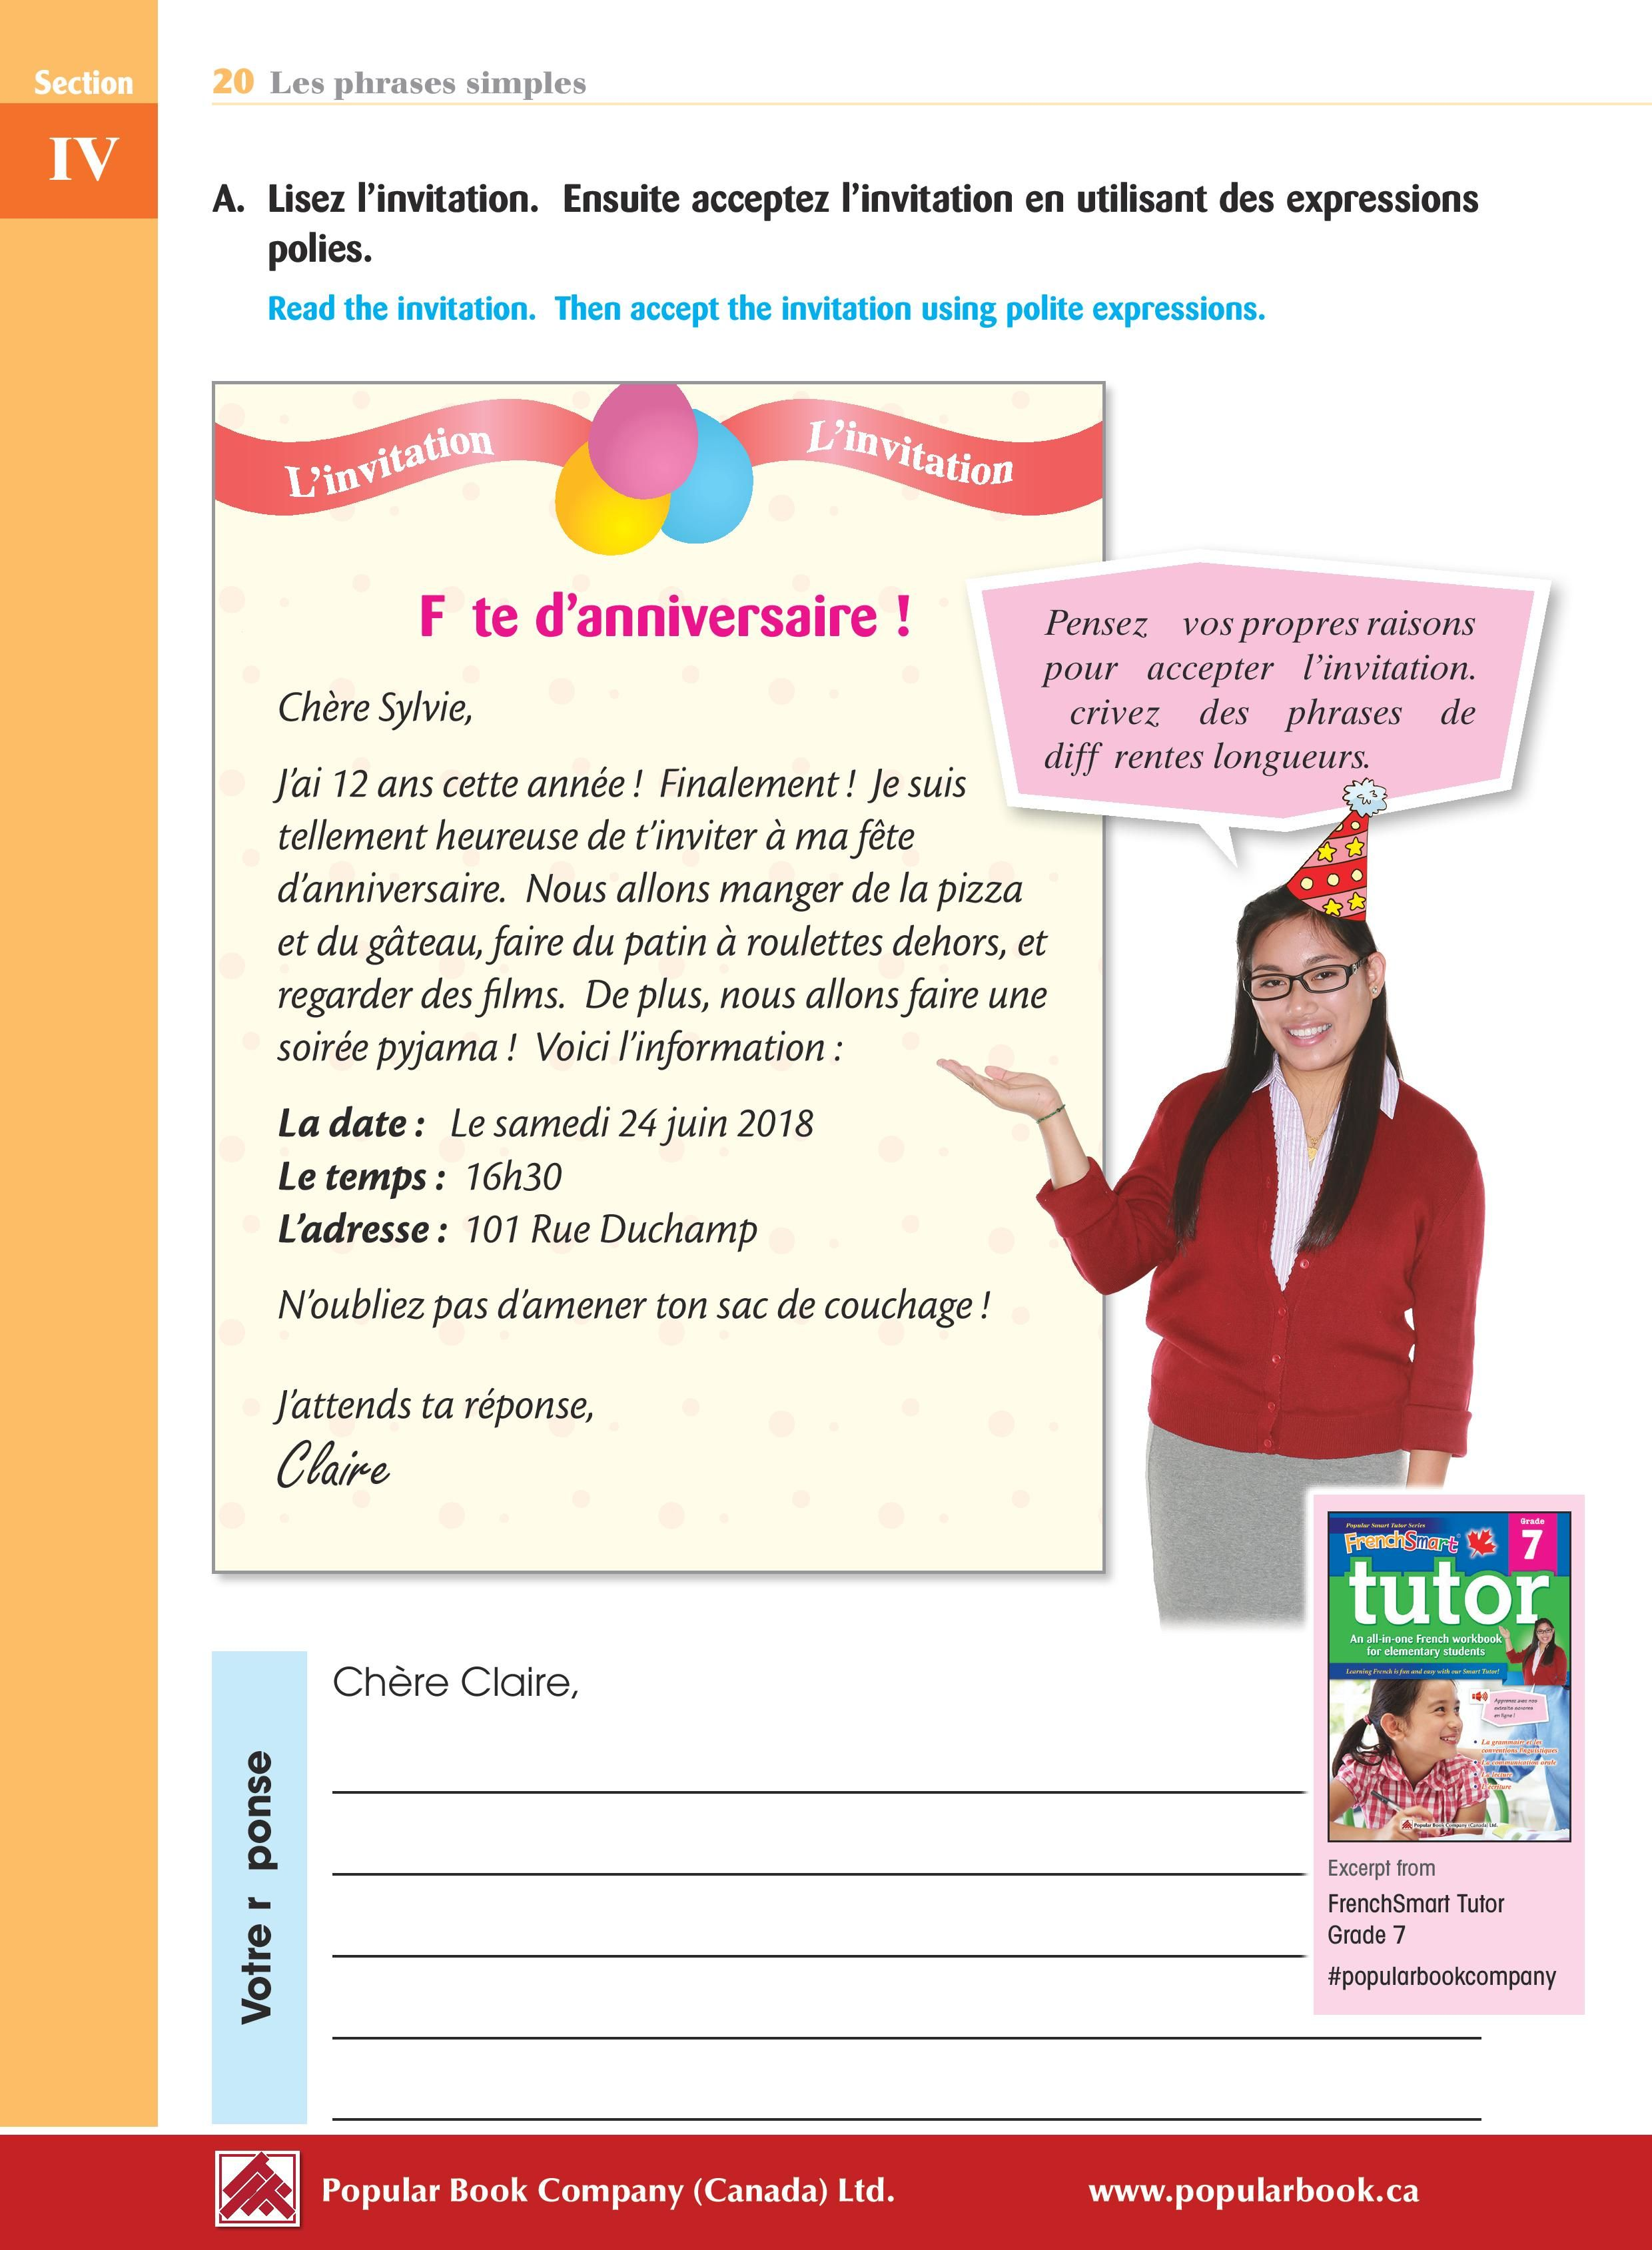 Download the free sample pages from FrenchSmart Tutor Grade 7 ...